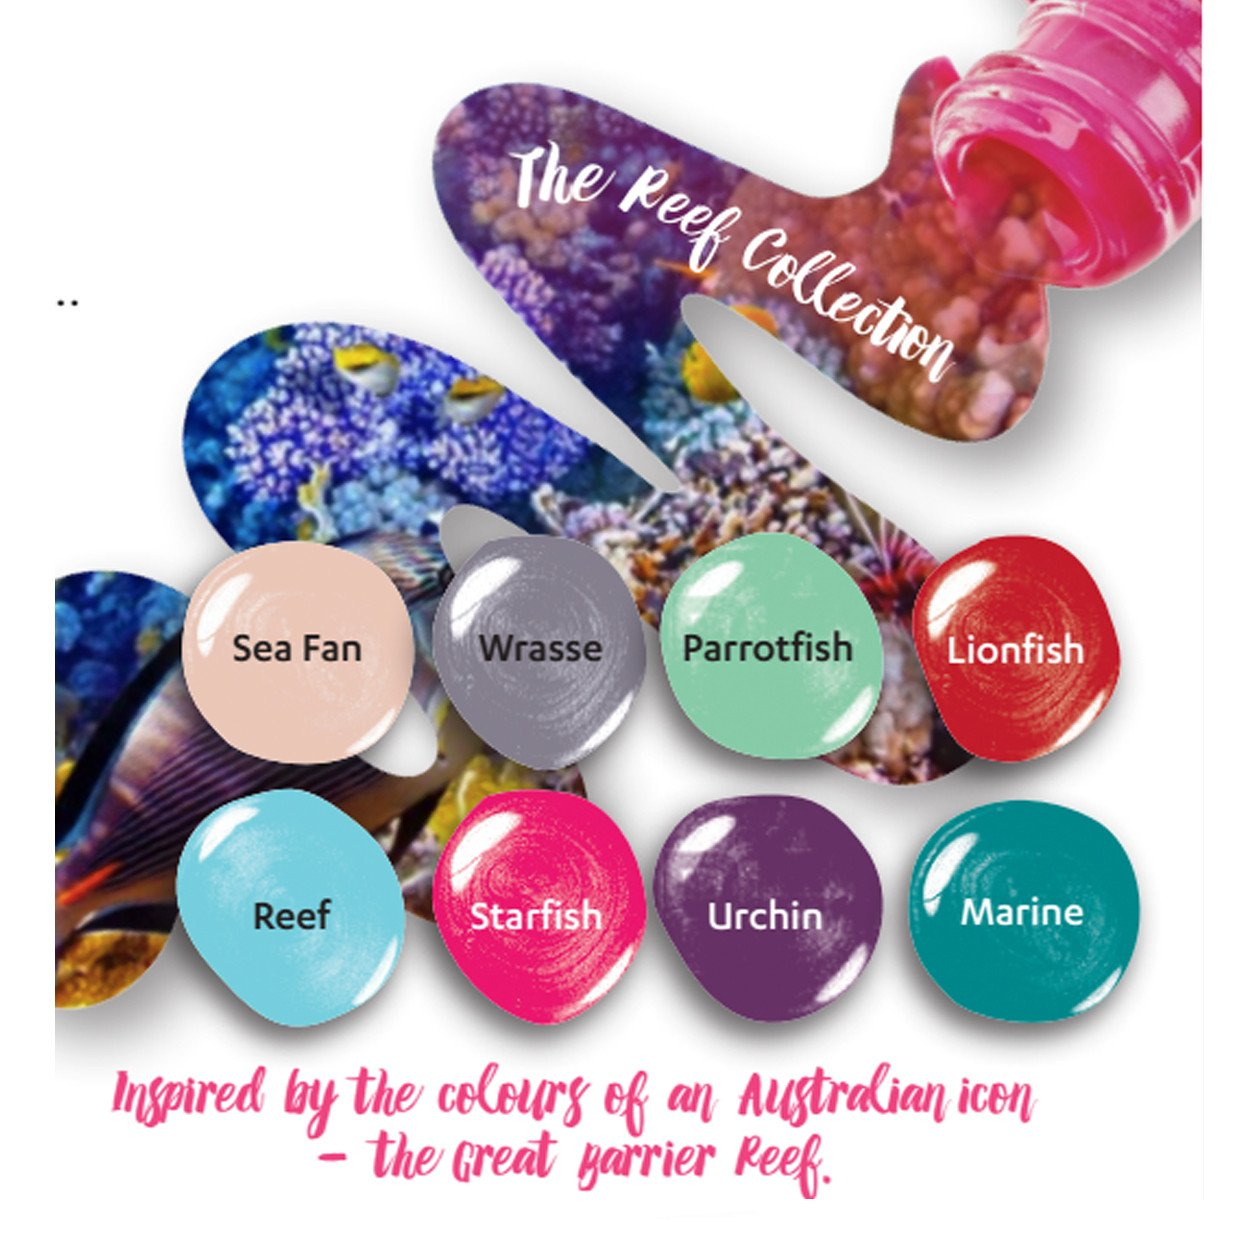 Jellystone 7 Free Nail Polish Jellystone Designs Beauty at Little Earth Nest Eco Shop